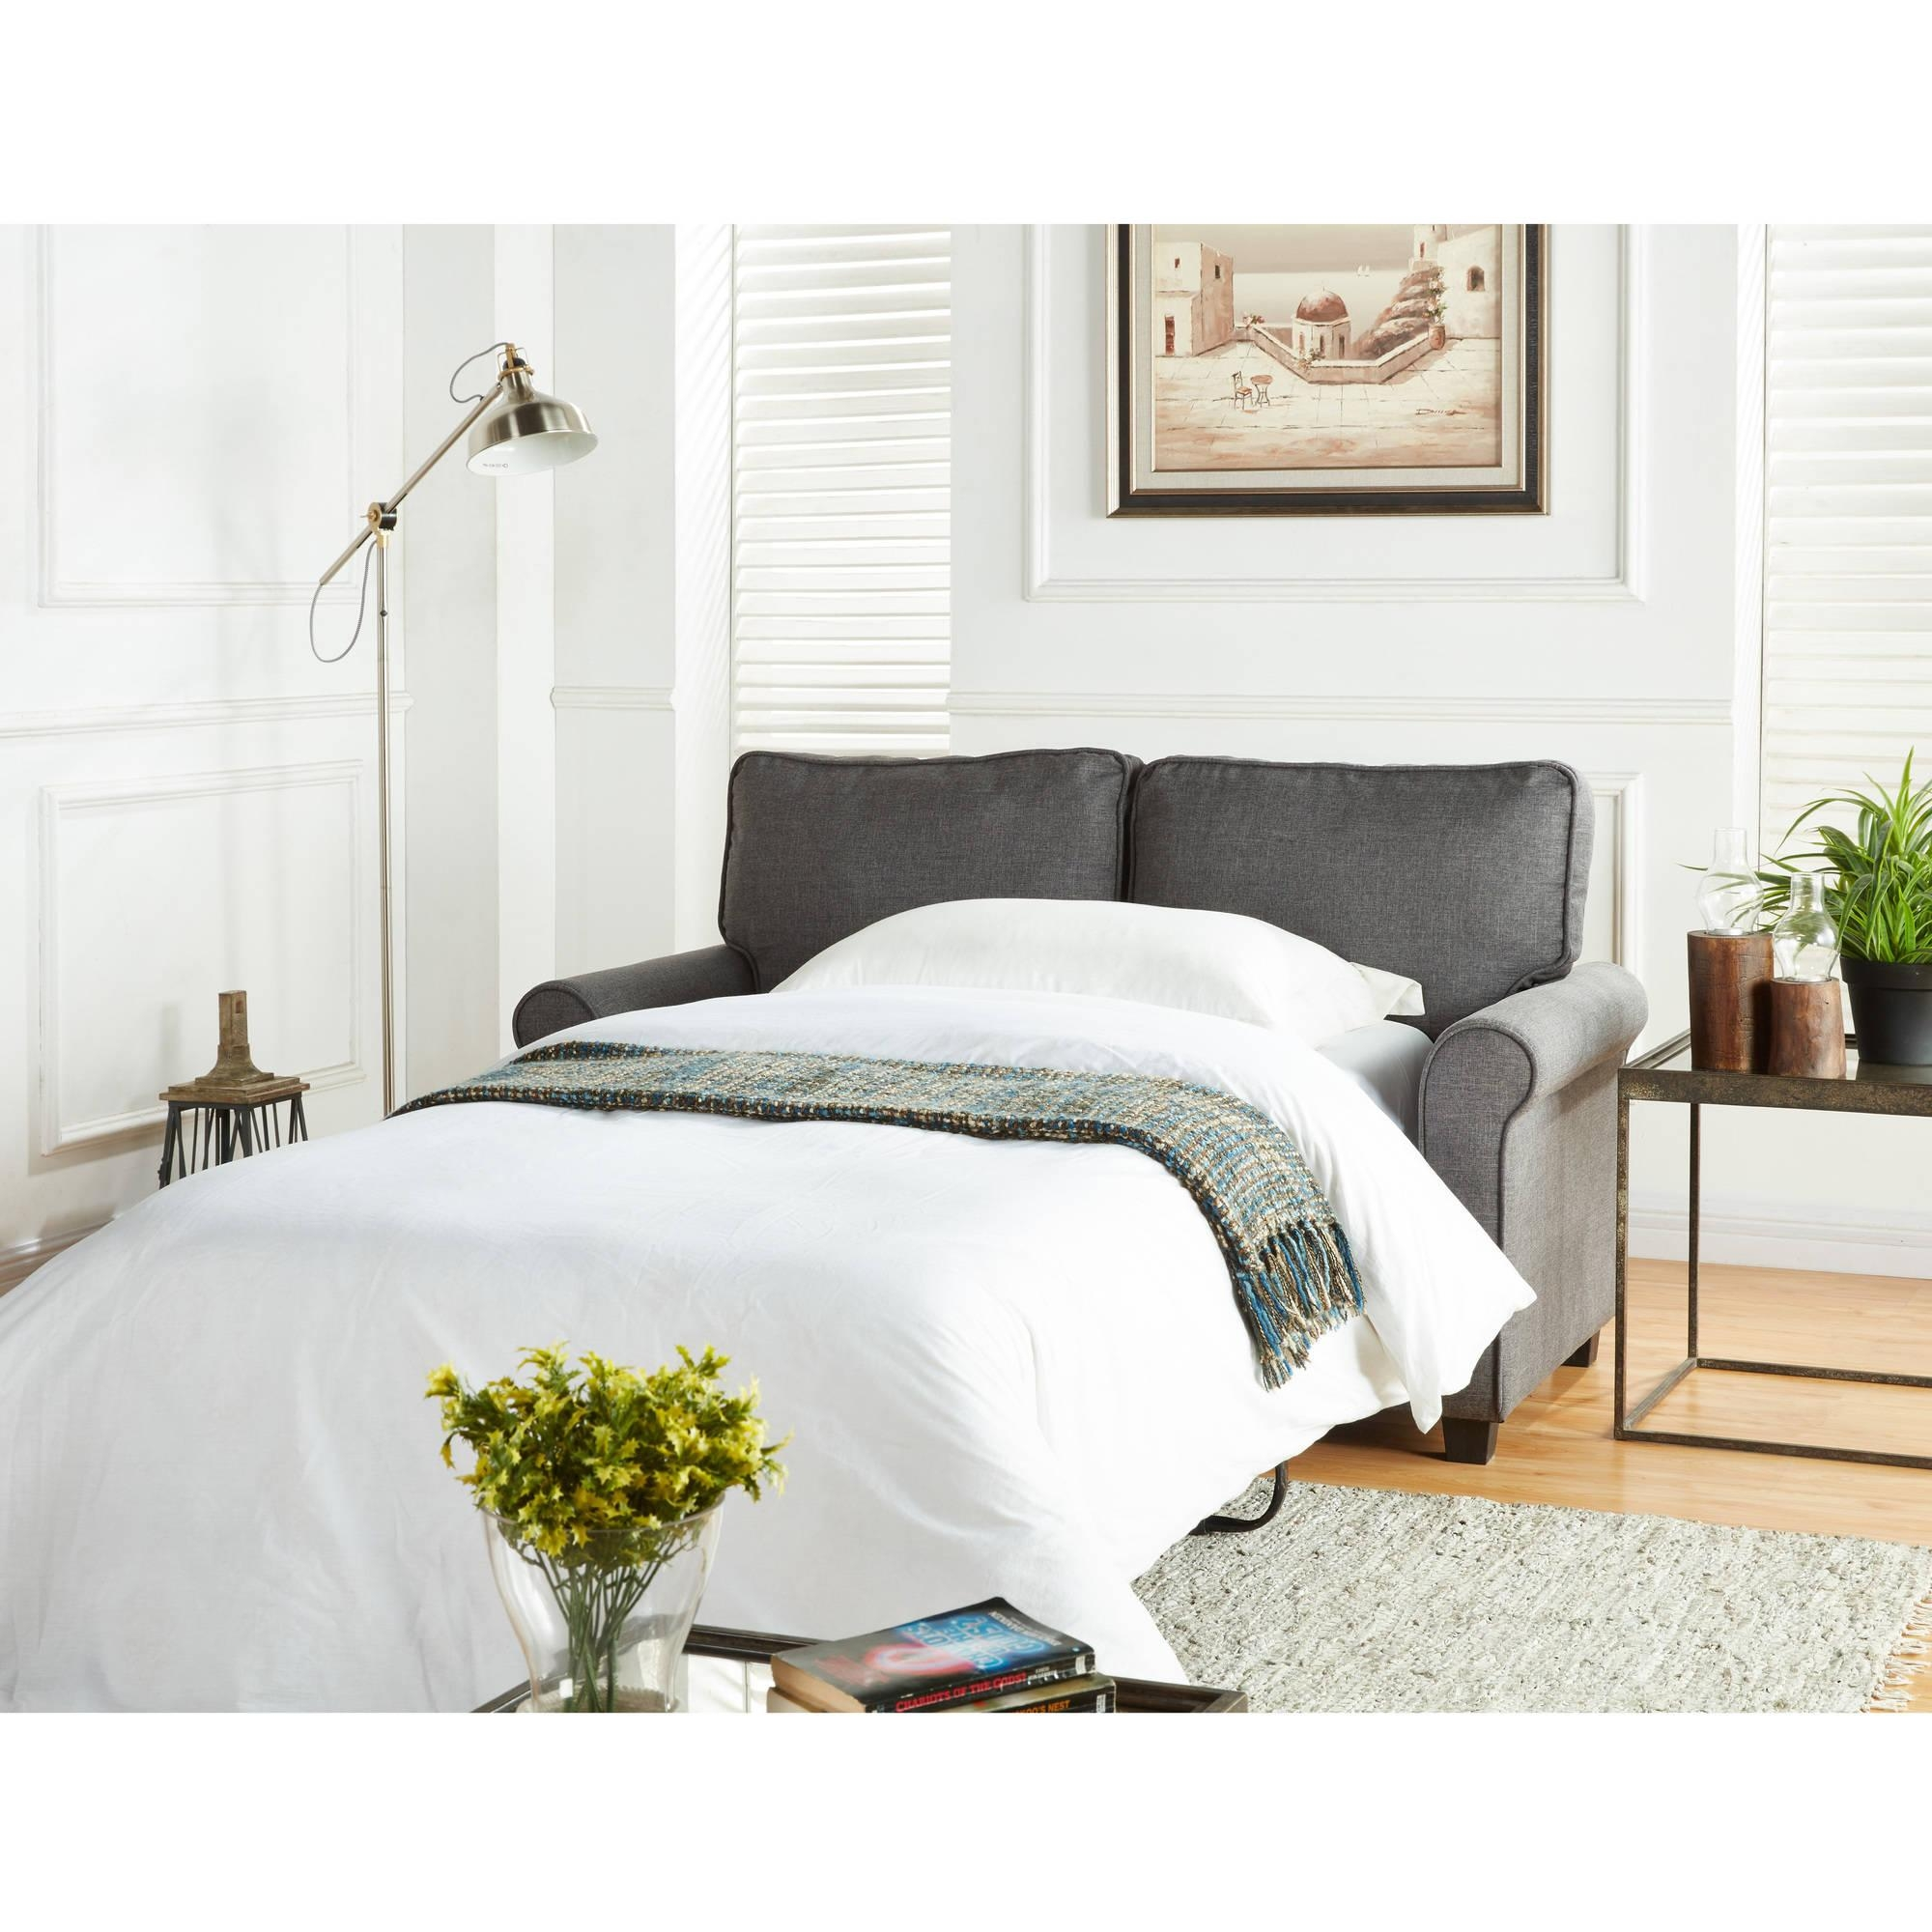 Mainstays Sofa Sleeper With Memory Foam Mattress, Grey – Walmart Intended For Mainstays Sleeper Sofas (Image 11 of 20)